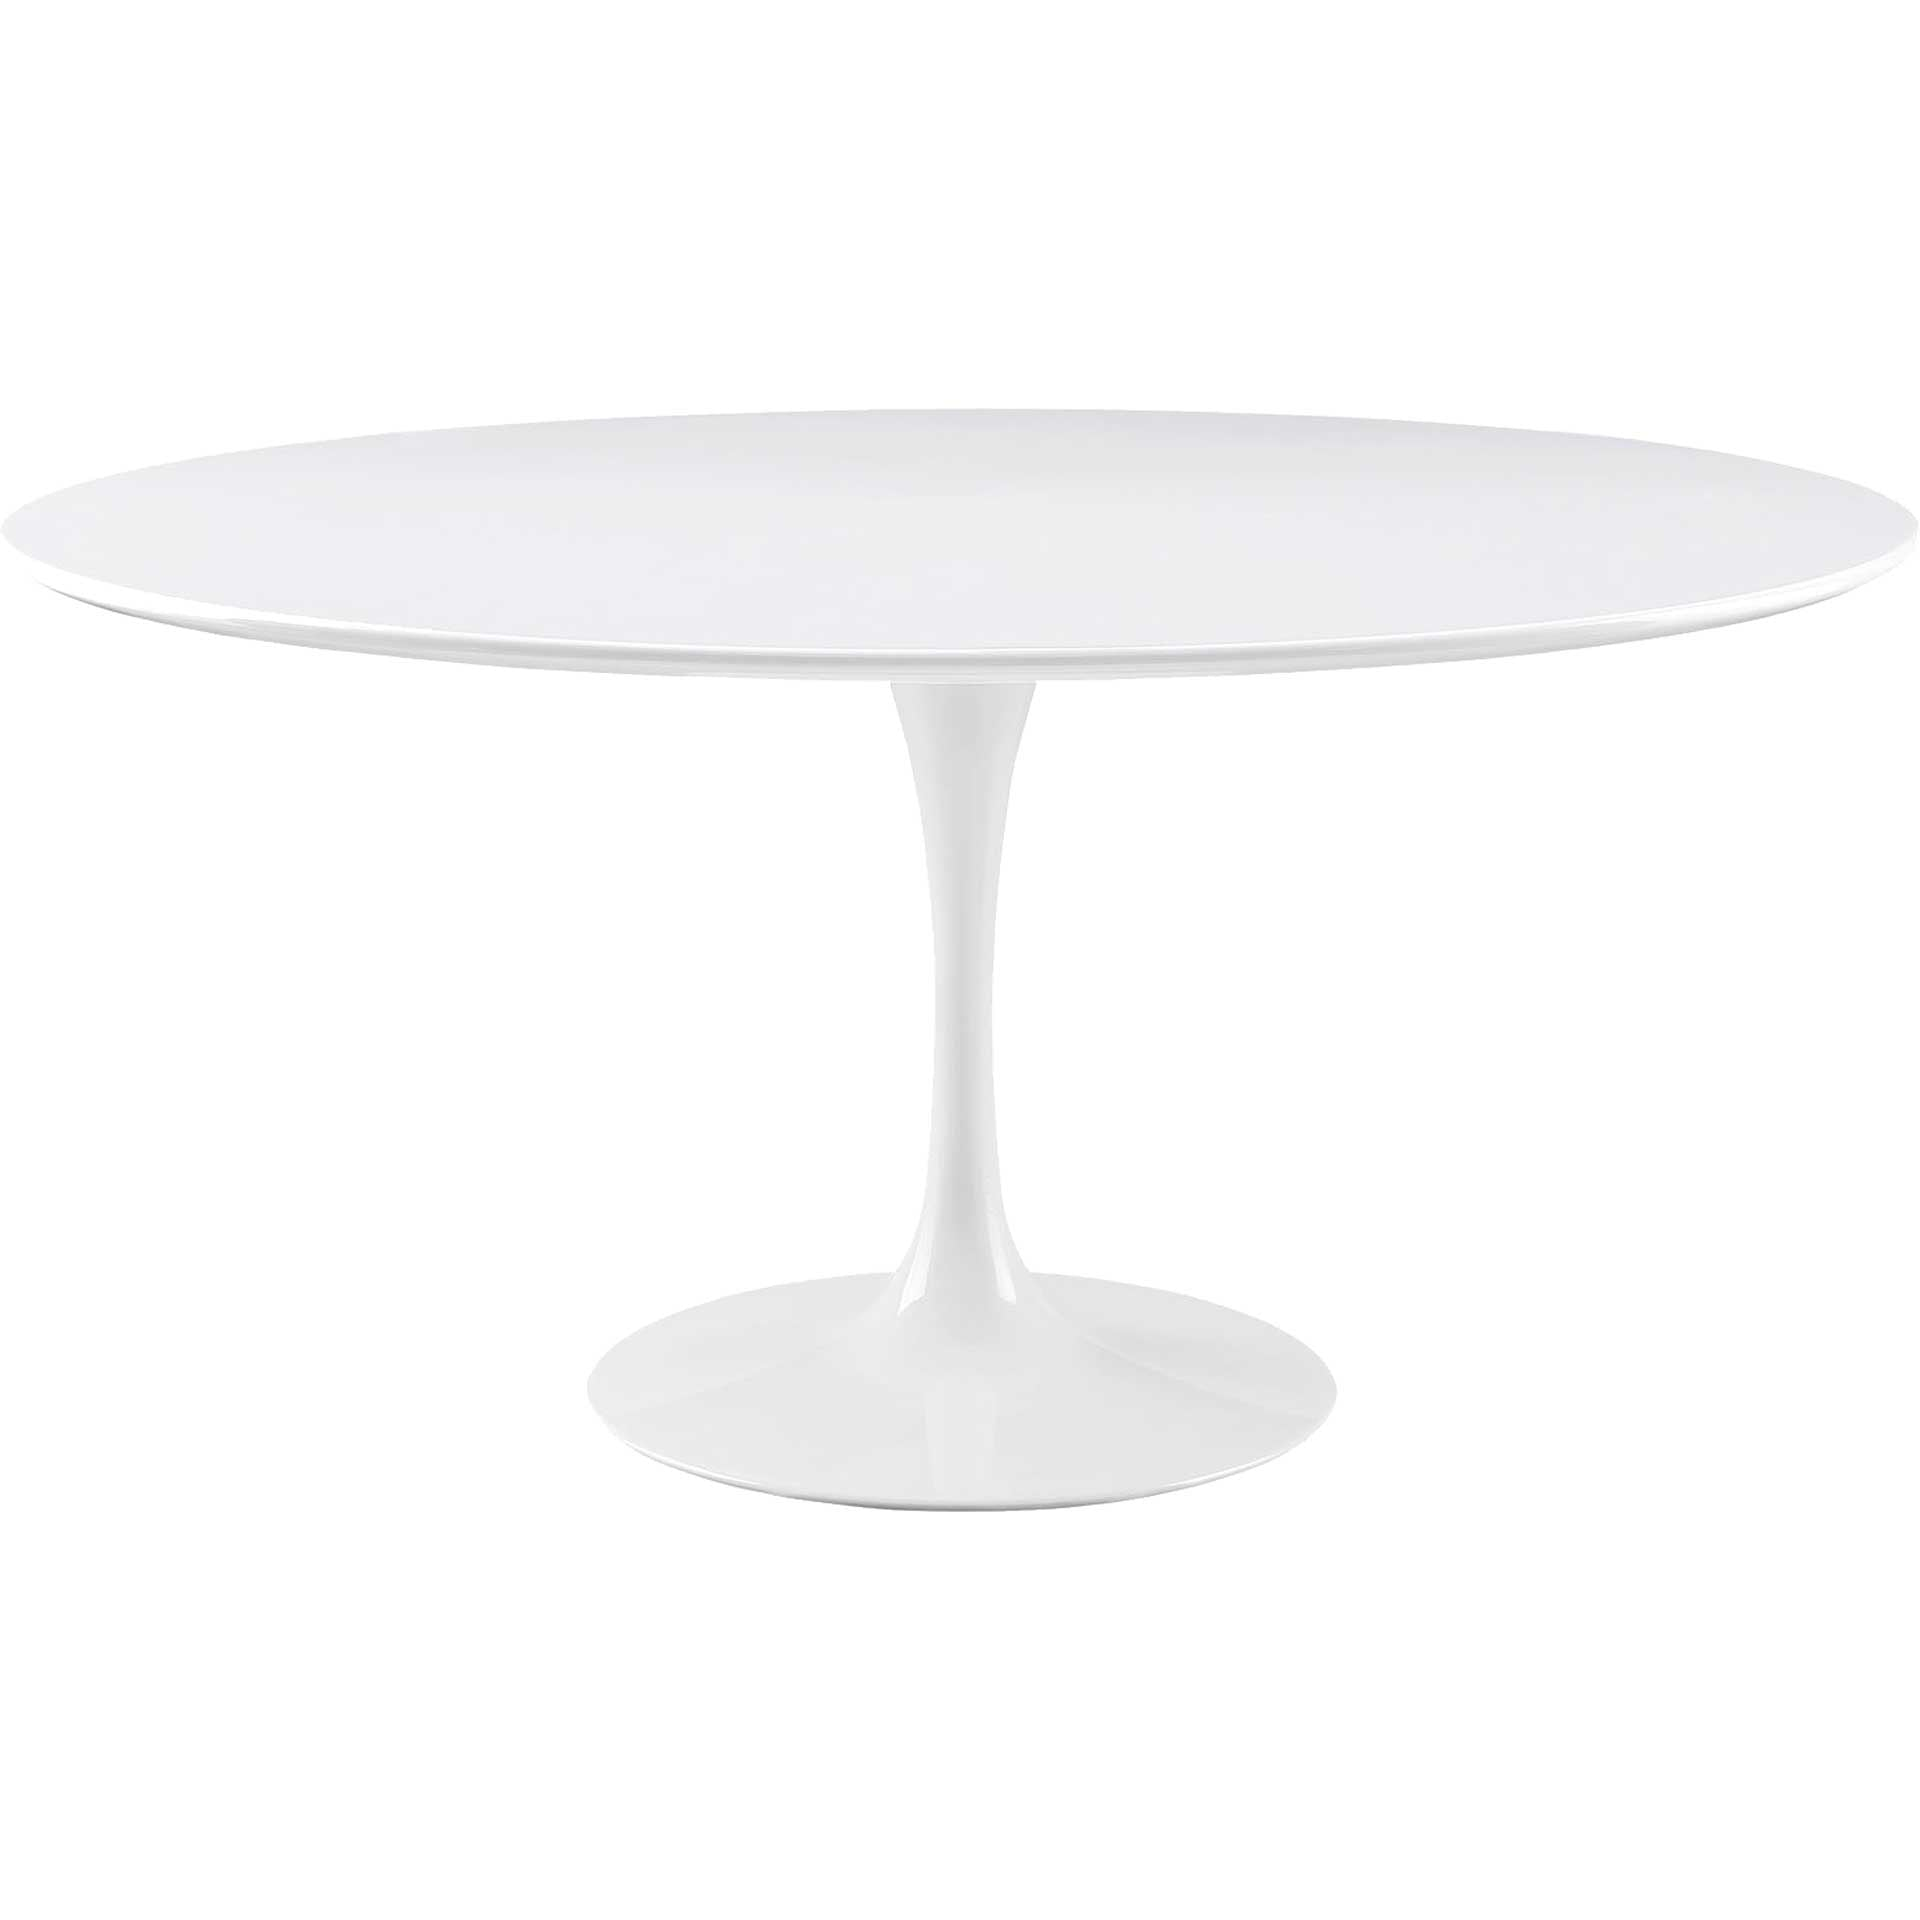 Lore Round Dining Table White